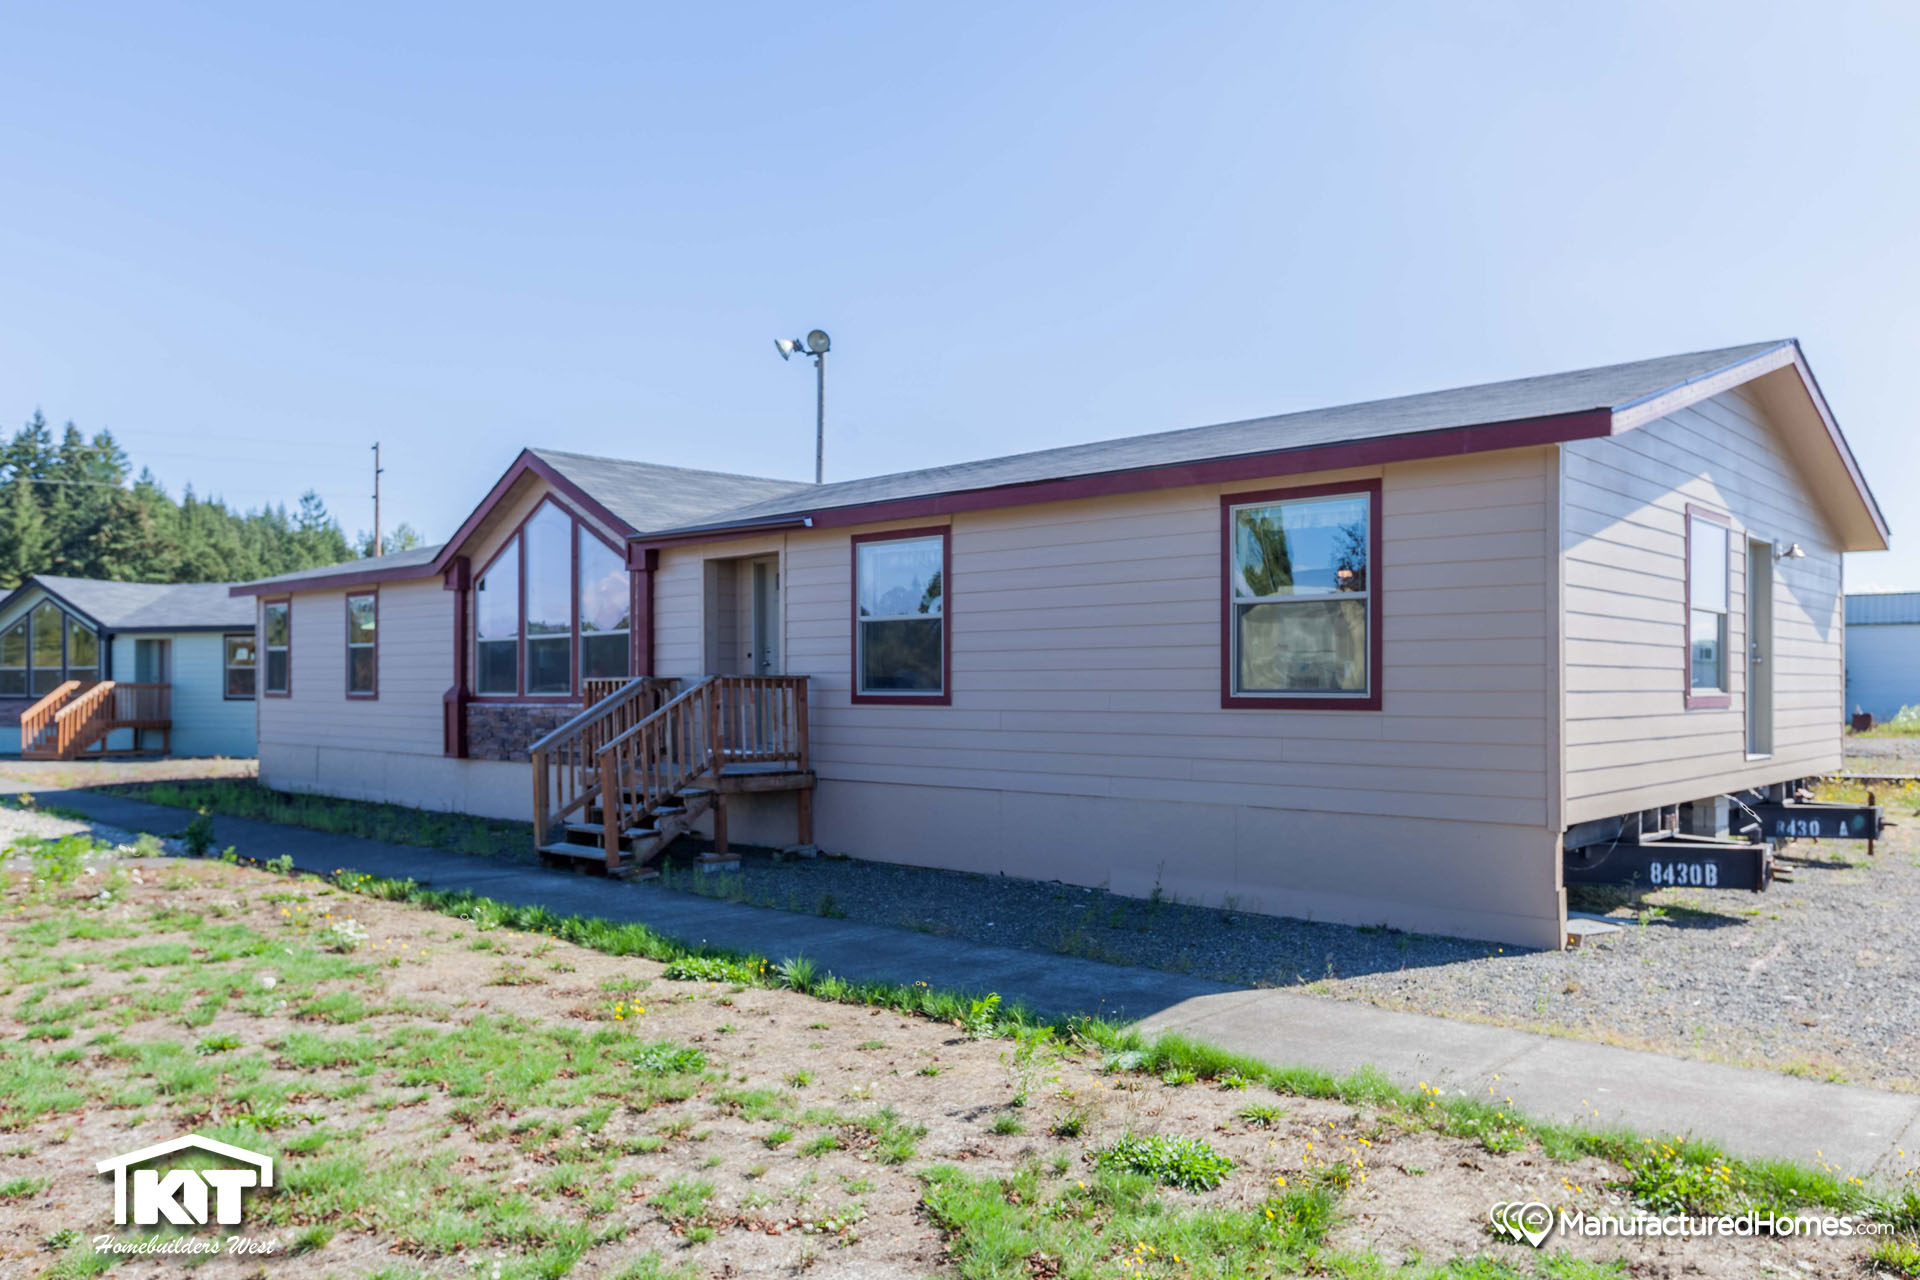 Washington home center in shelton wa manufactured home for Kit west homes